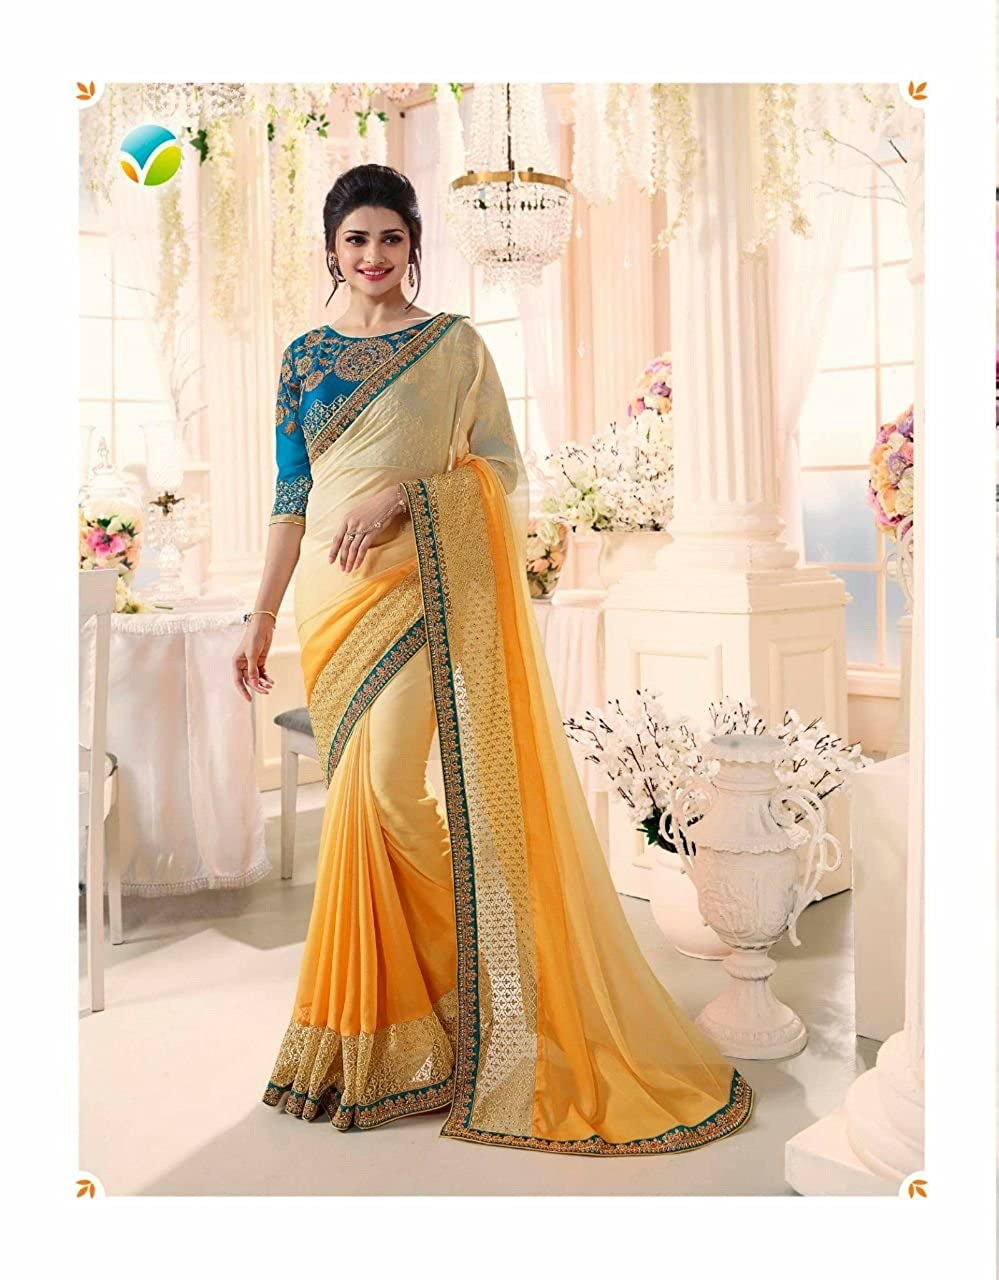 b0ee2362ea Subham Creation Women's latest Fabric Georgette Saree With Banglori Silk  Blouse.: Amazon.in: Clothing & Accessories